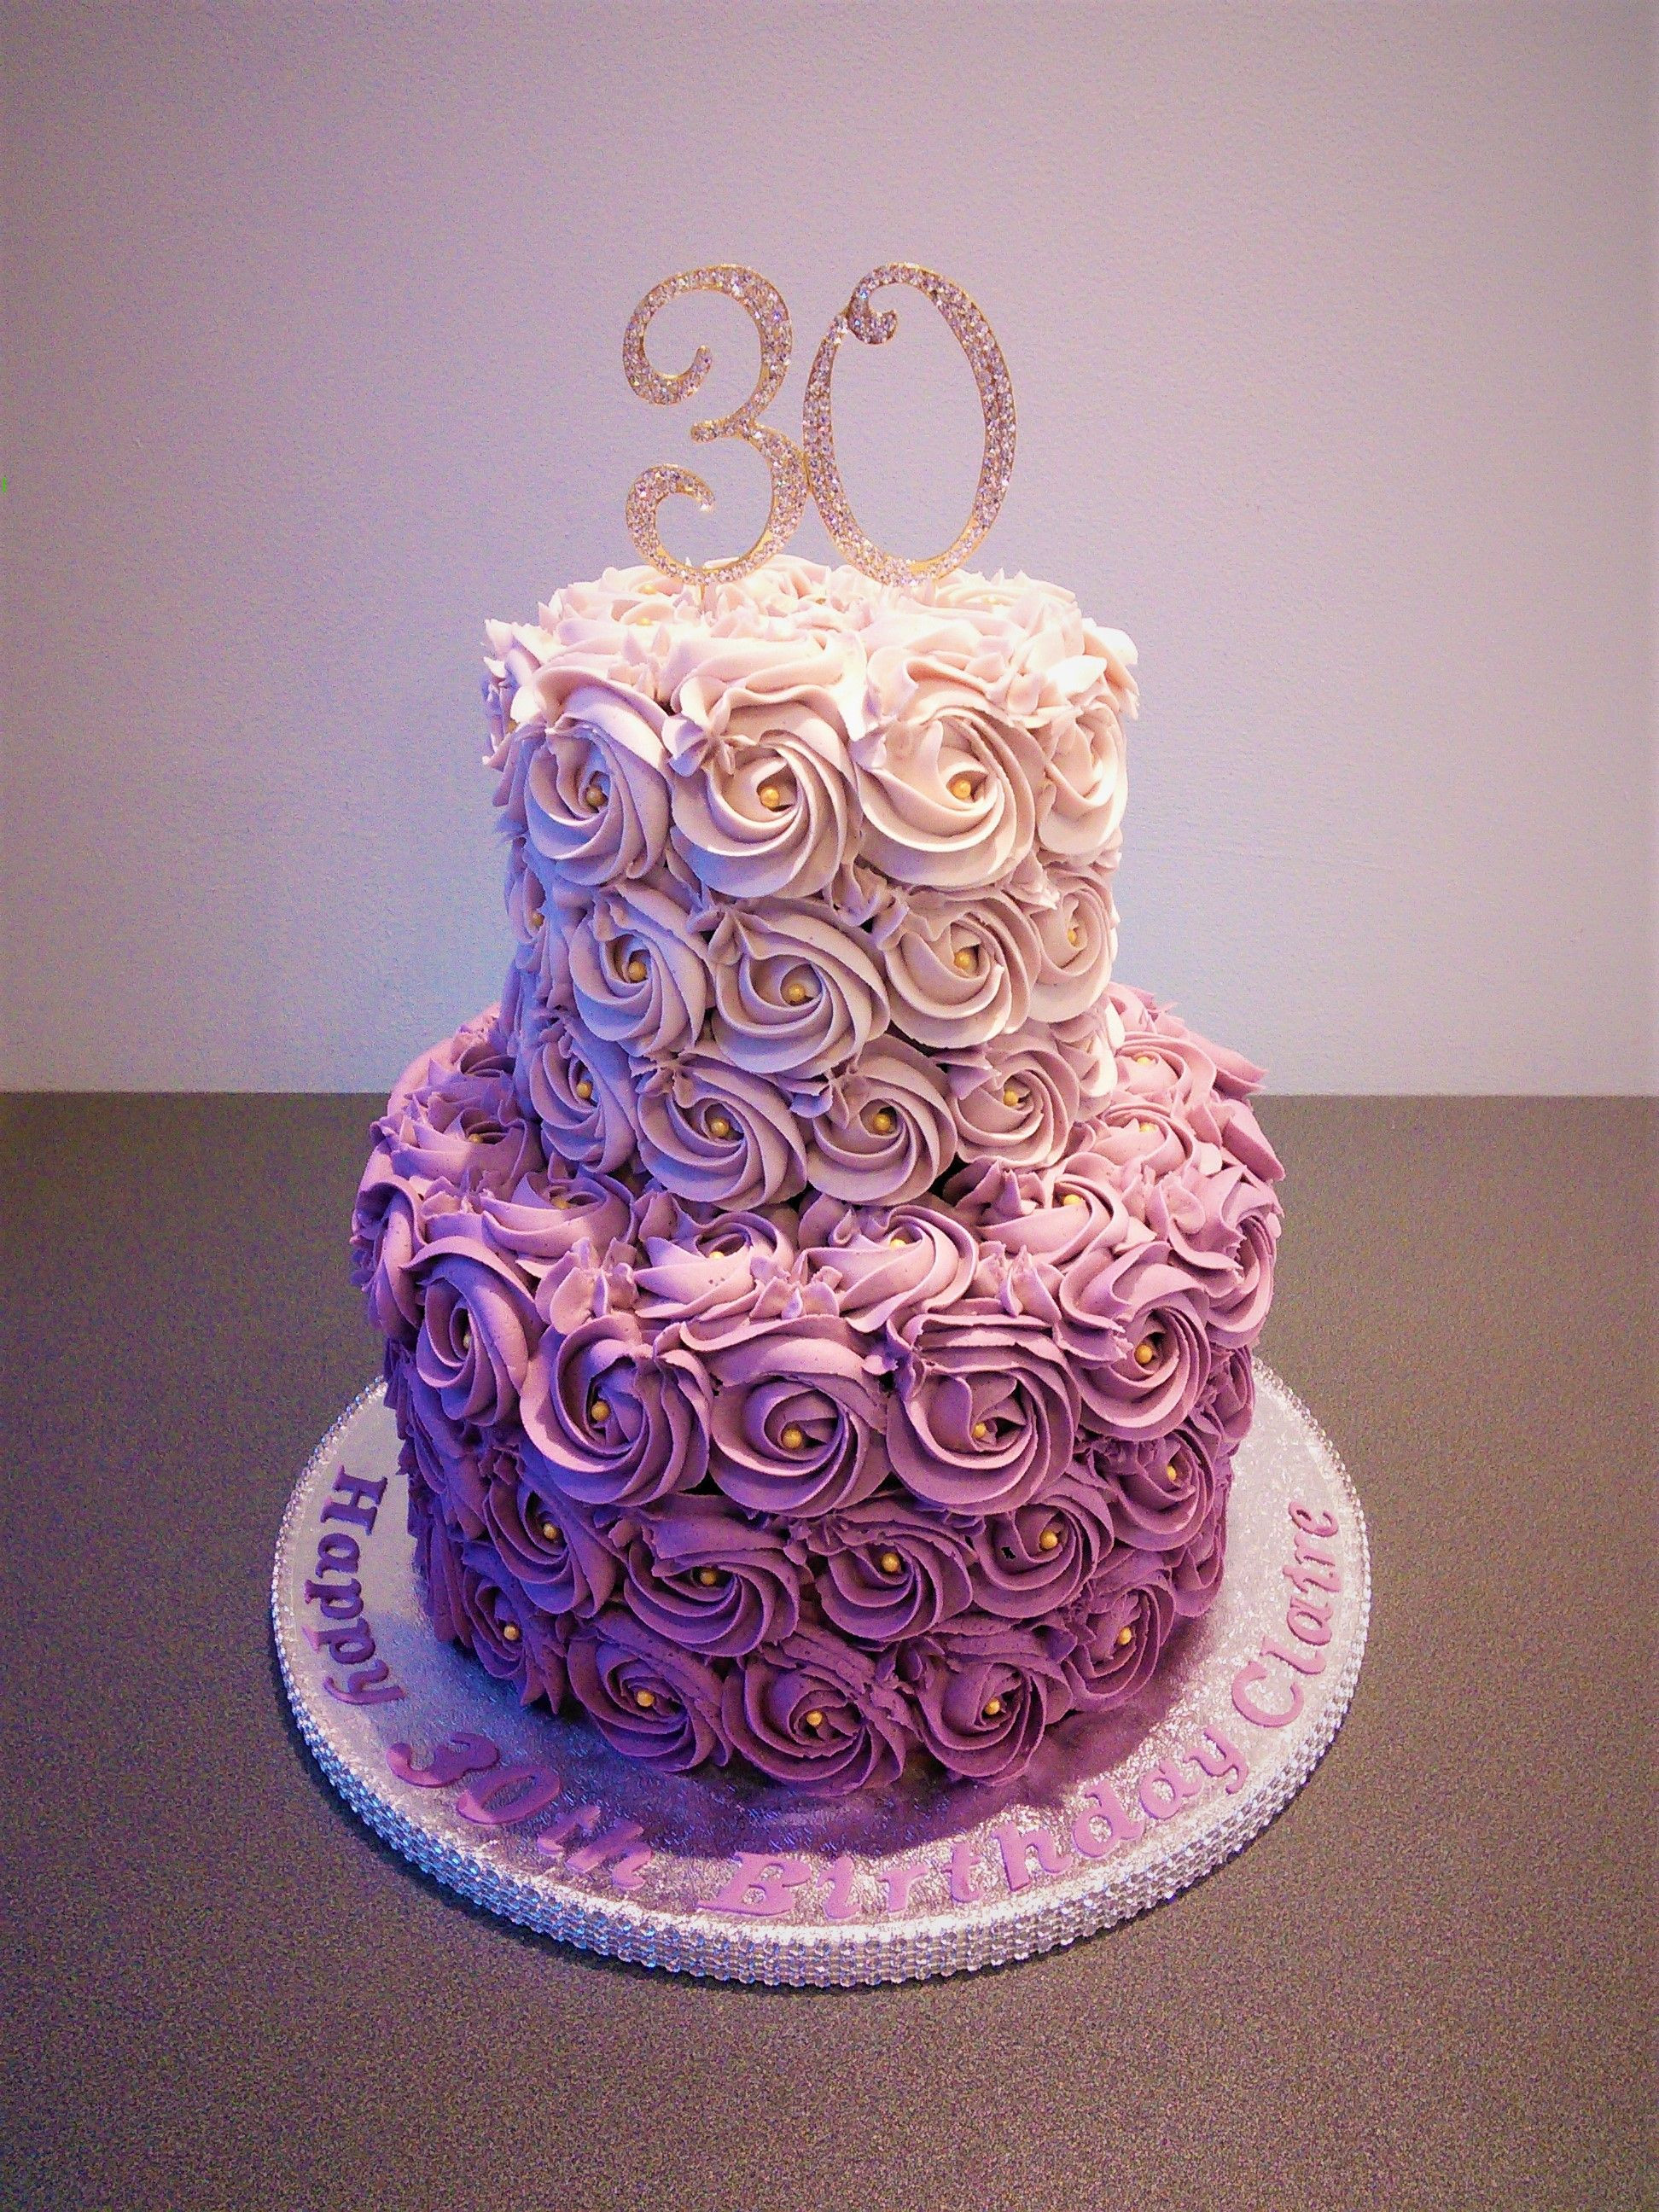 Best ideas about 2 Tier Birthday Cake . Save or Pin purple rose ombre two tier cake Now.